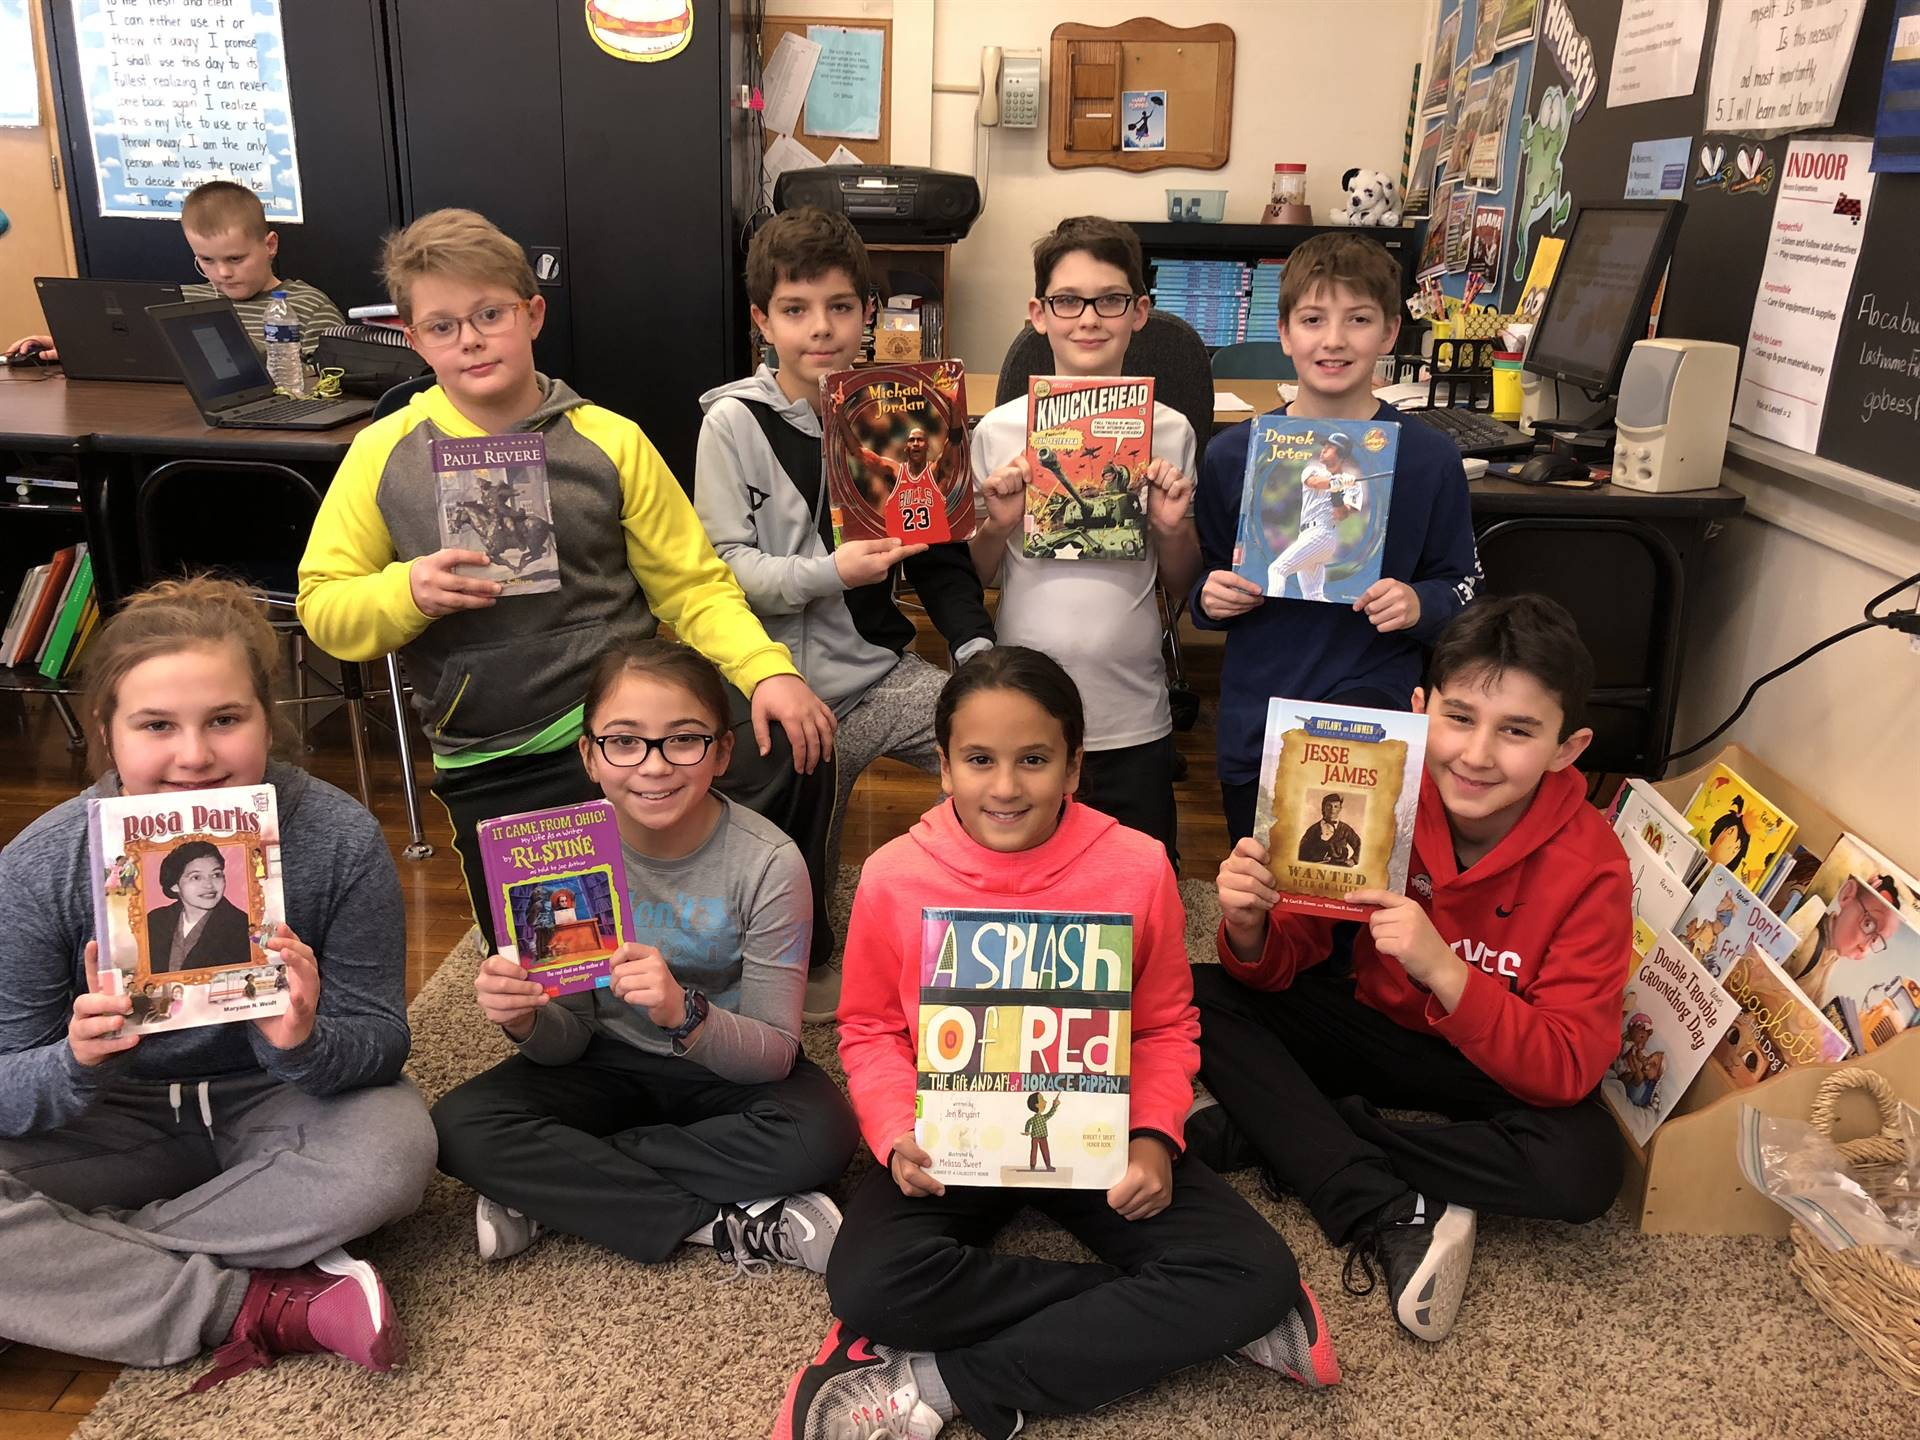 5th graders with new books